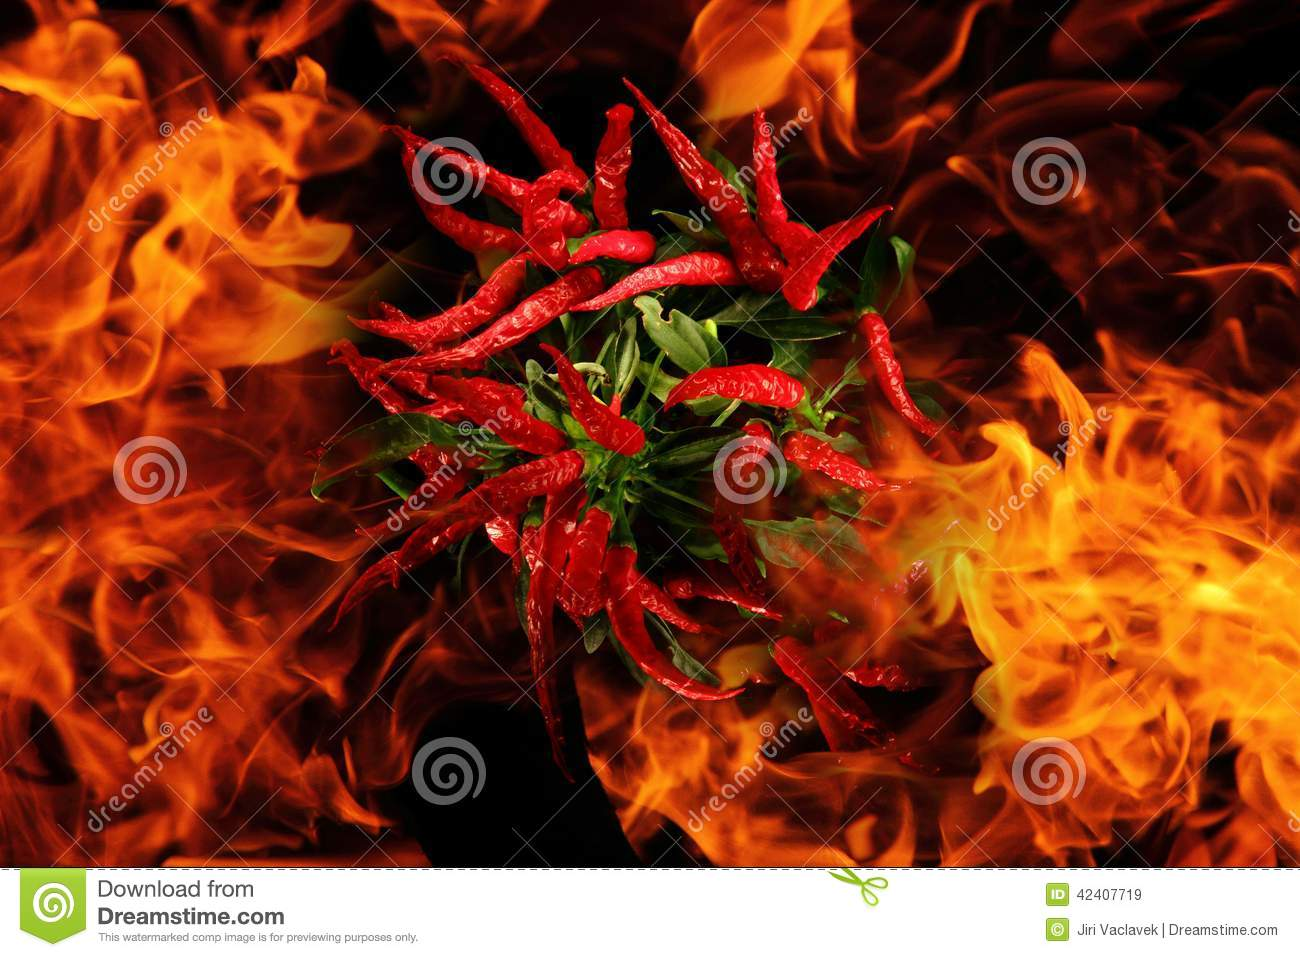 Peperoncino rosso nelle fiamme